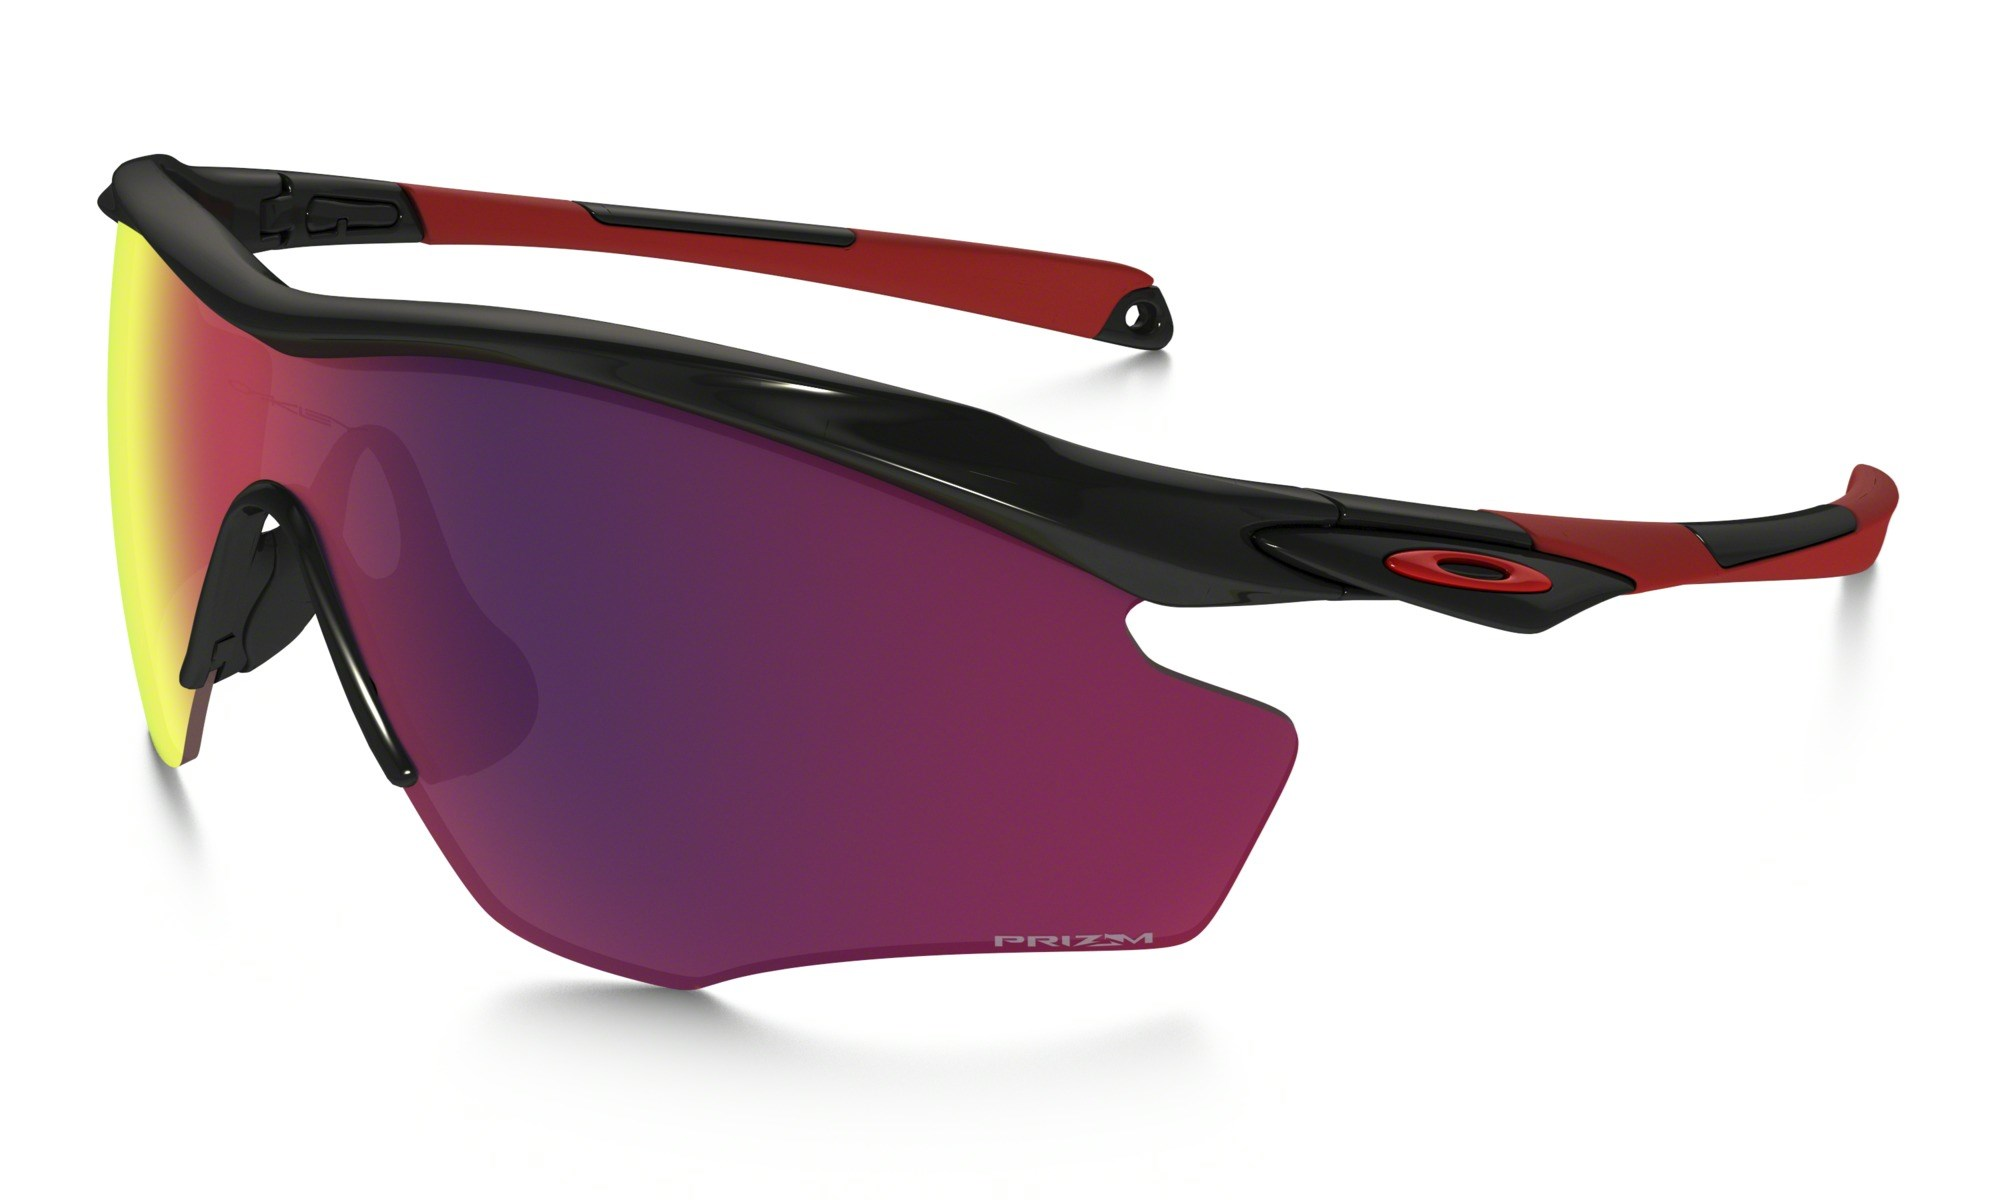 214b1db77d Oakley M2 Frame XL Polished Black Prizm Road. 0 (Be the first to add a  review!)